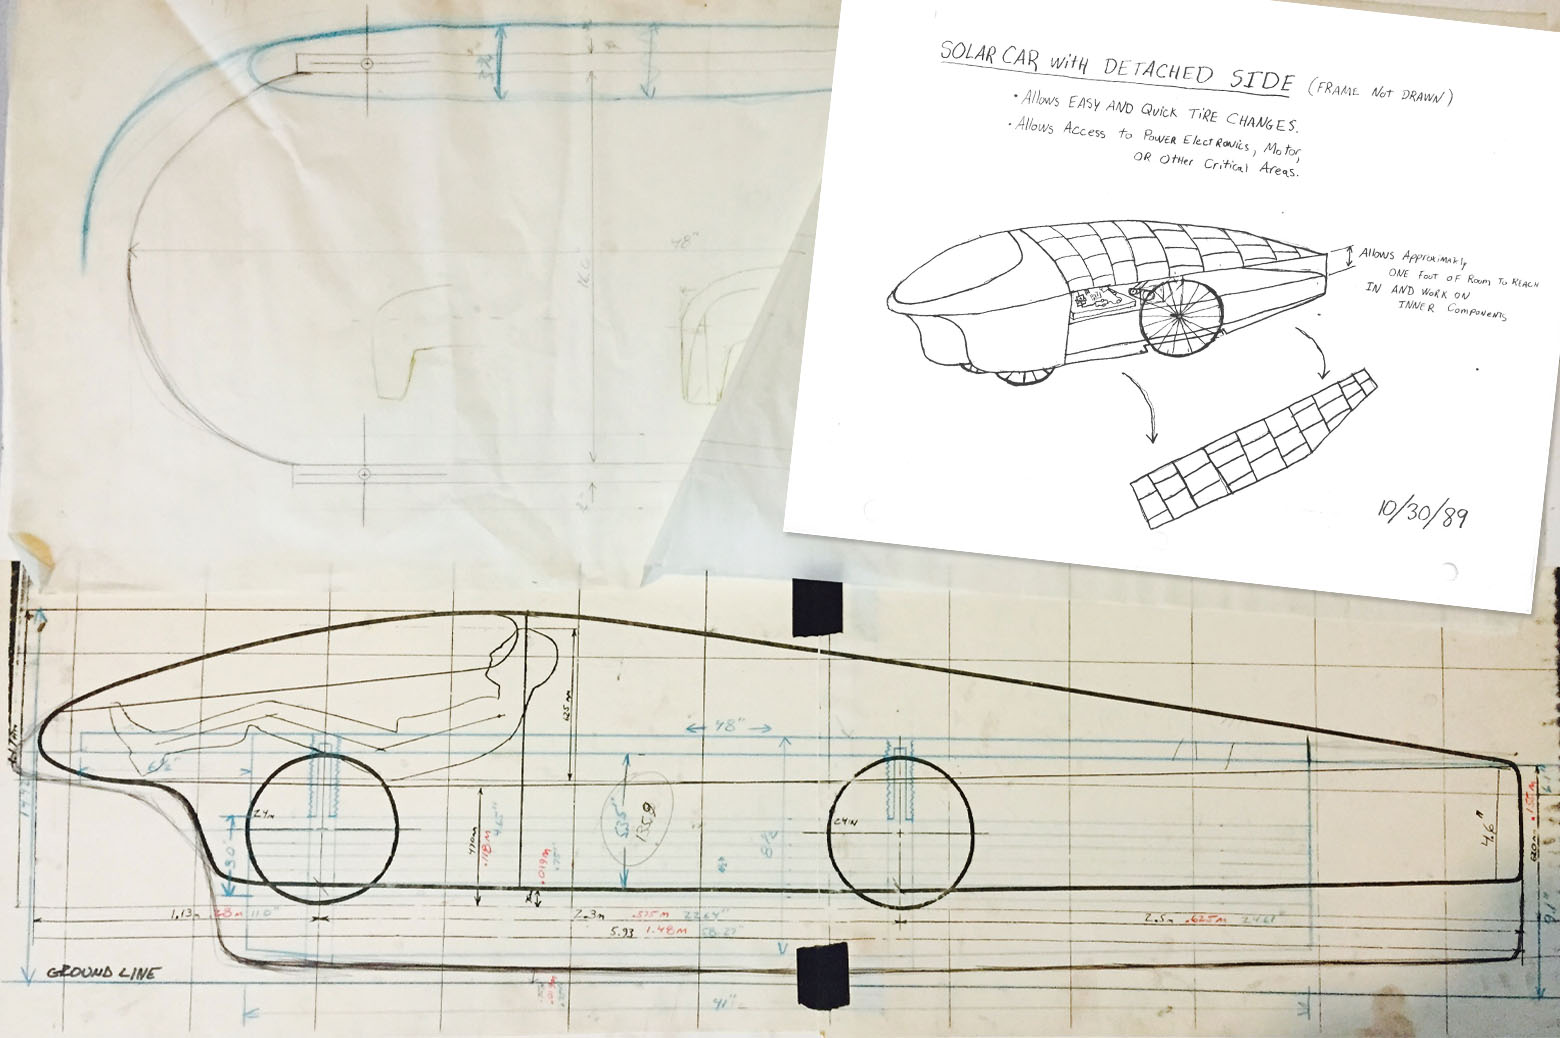 Schematic sketches of the first solar car.